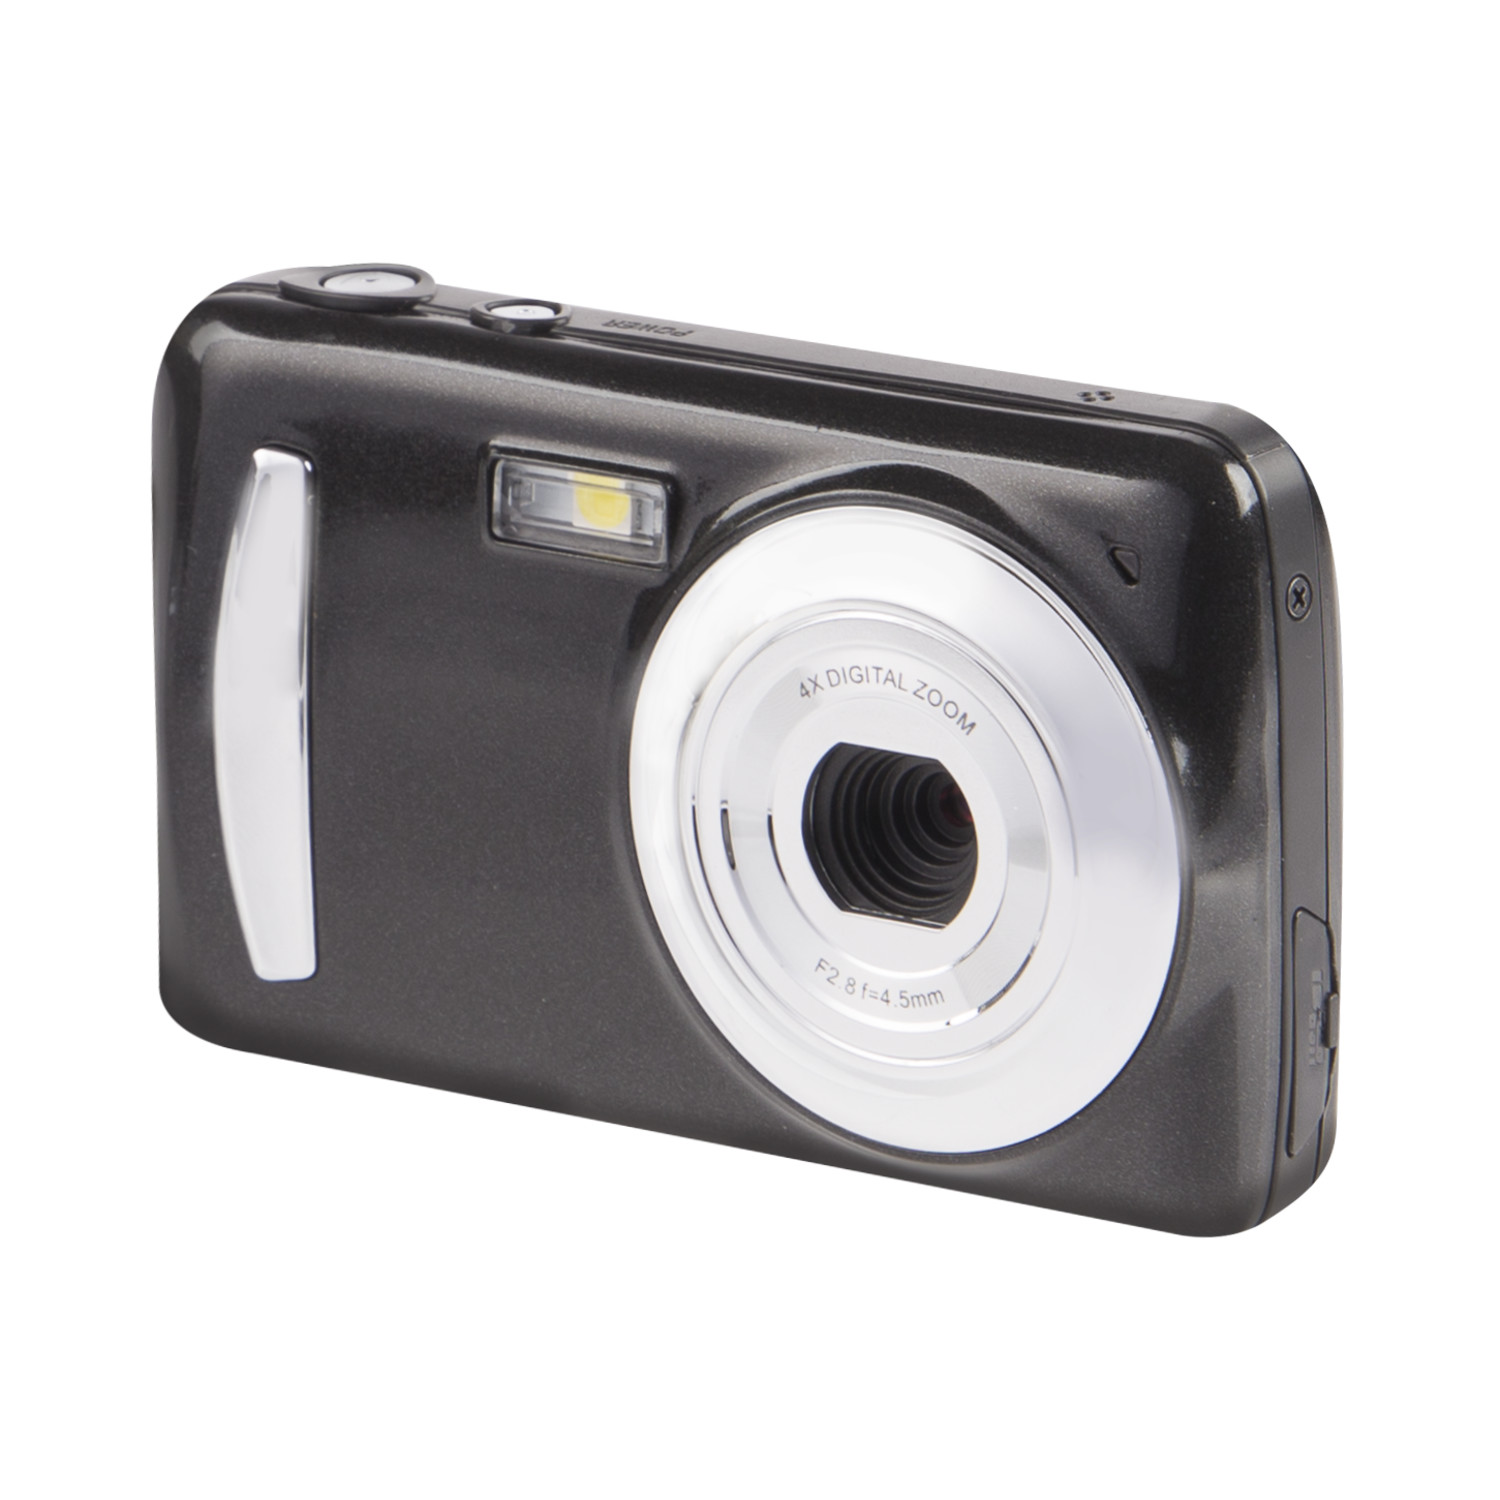 Onn 18 Megapixel Digital Camera With 2.4-Inch Screen